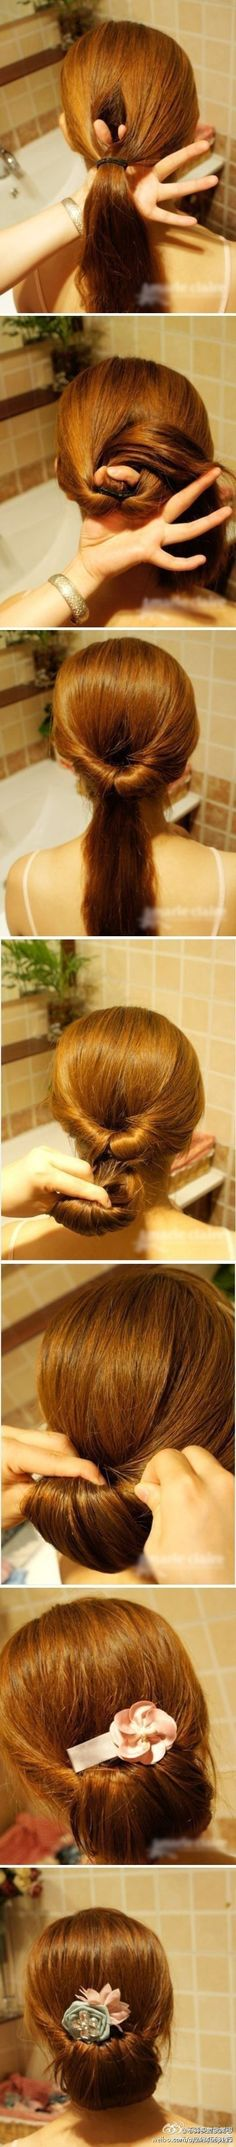 Got to love the simplicity of this classic bun